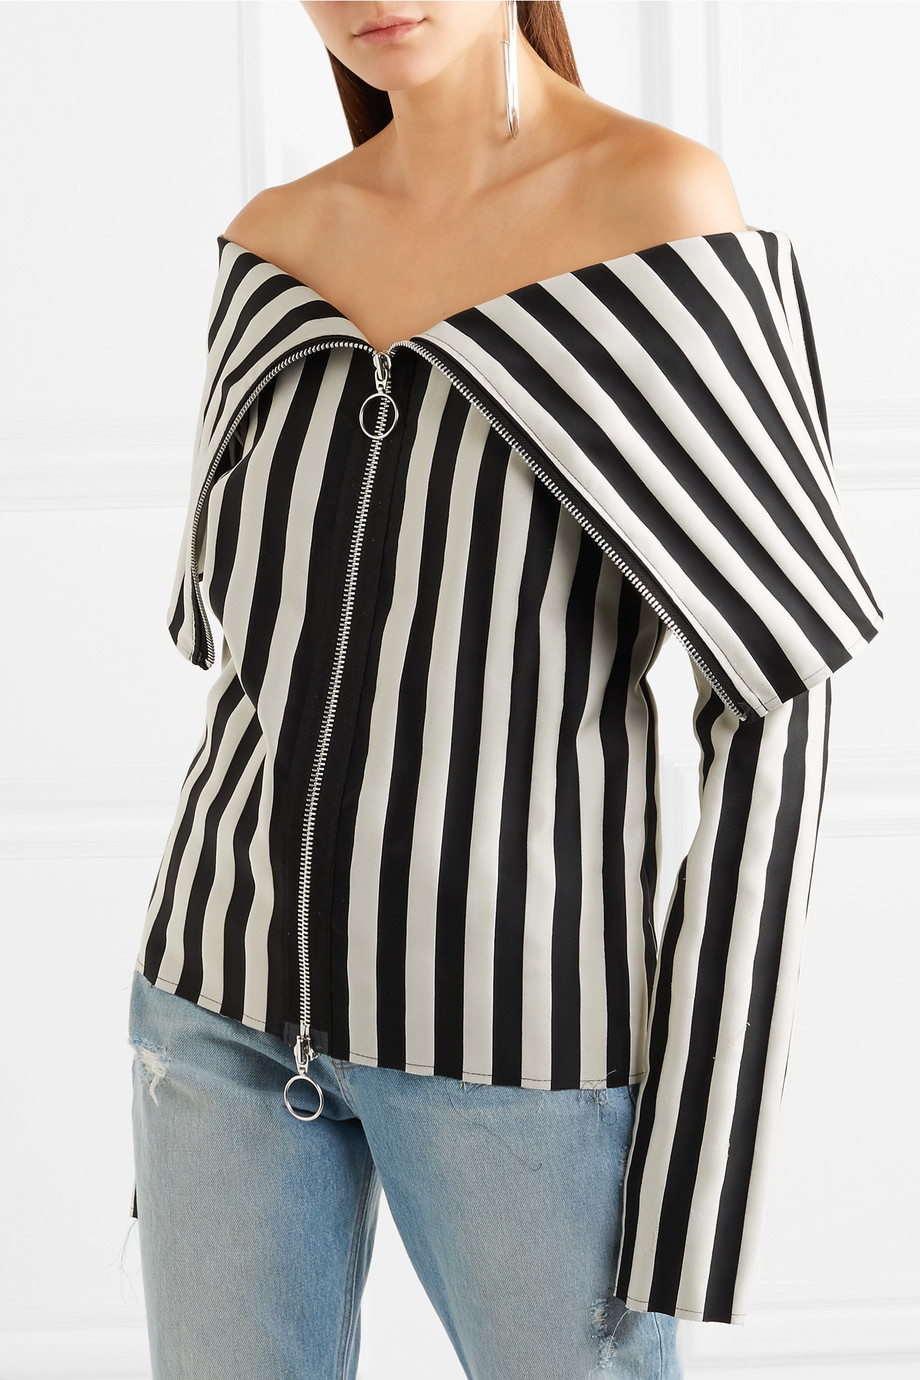 Satin blouse Marques' Almeida buy Satin blouse Marques' Almeida internet shop